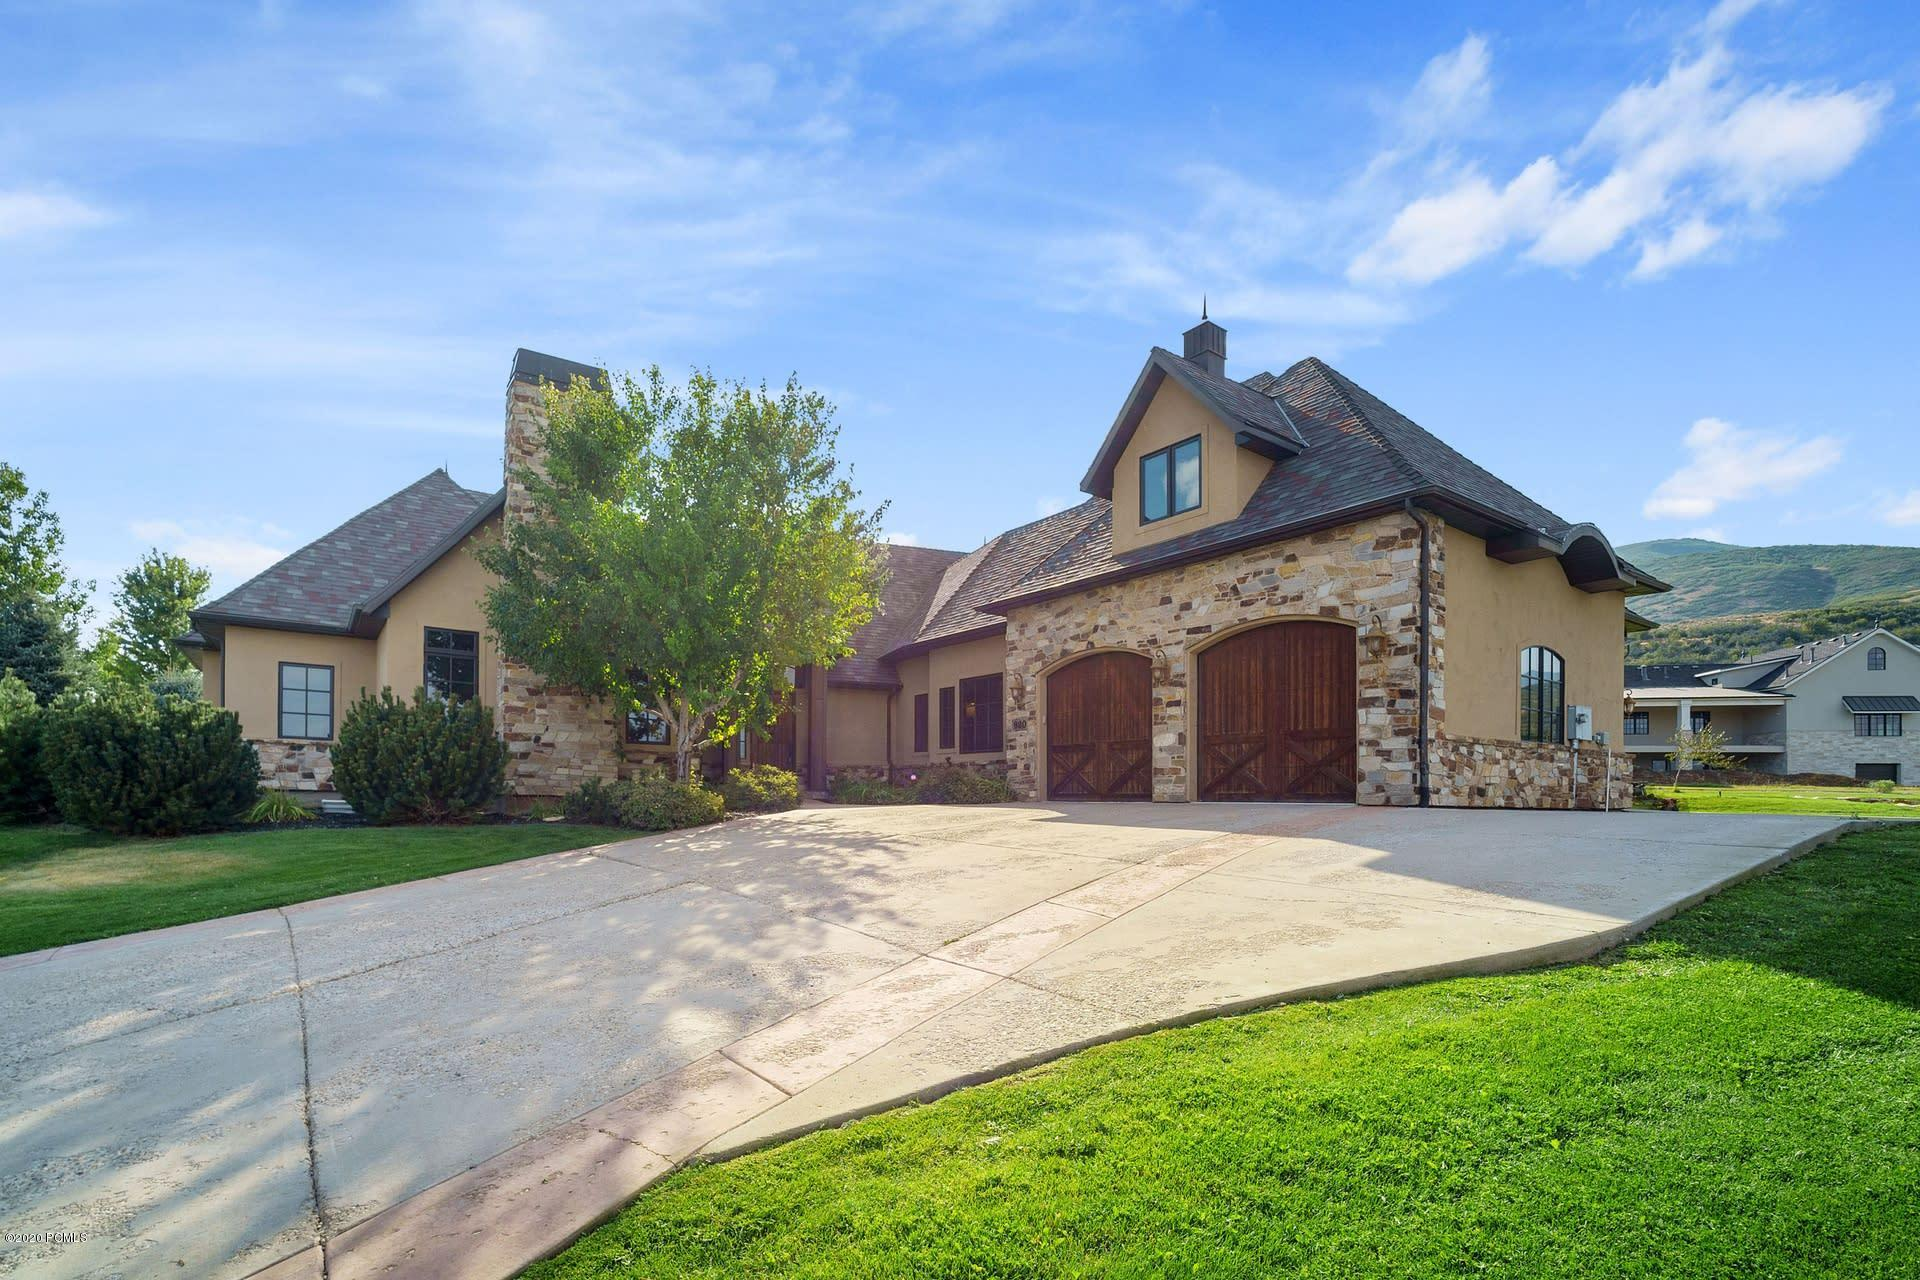 920 Cascade Court Court, Midway, Utah 84049, 6 Bedrooms Bedrooms, ,5 BathroomsBathrooms,Single Family,For Sale,Cascade Court,12003113